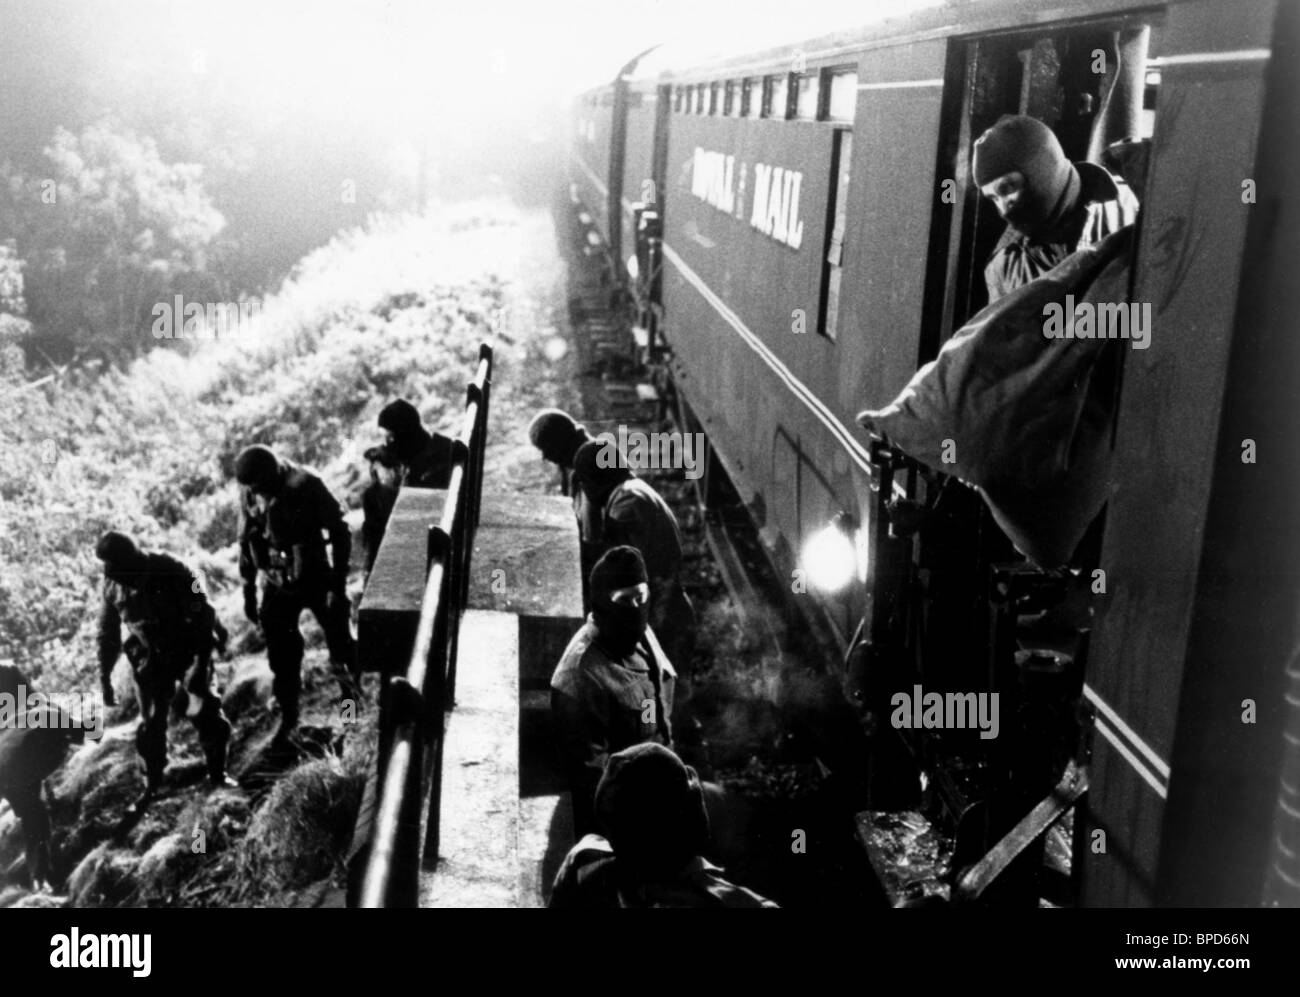 the great train robbery black and white stock photos images alamy